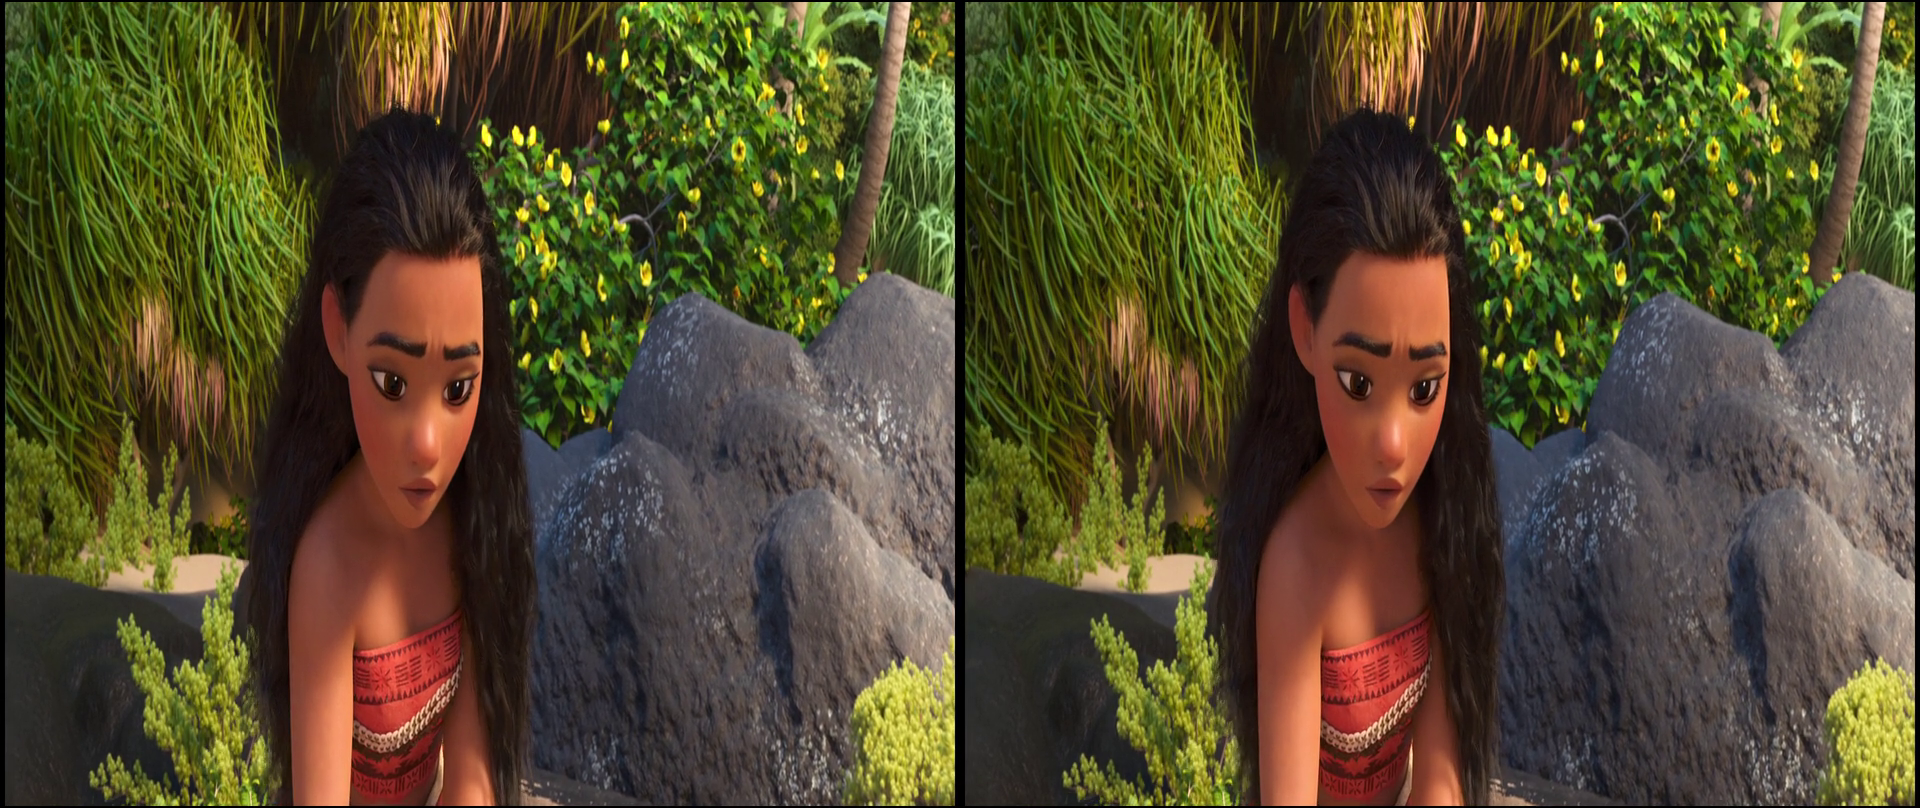 Moana 2016 3D 1080p BluRay DTS x264-SPRiNTER